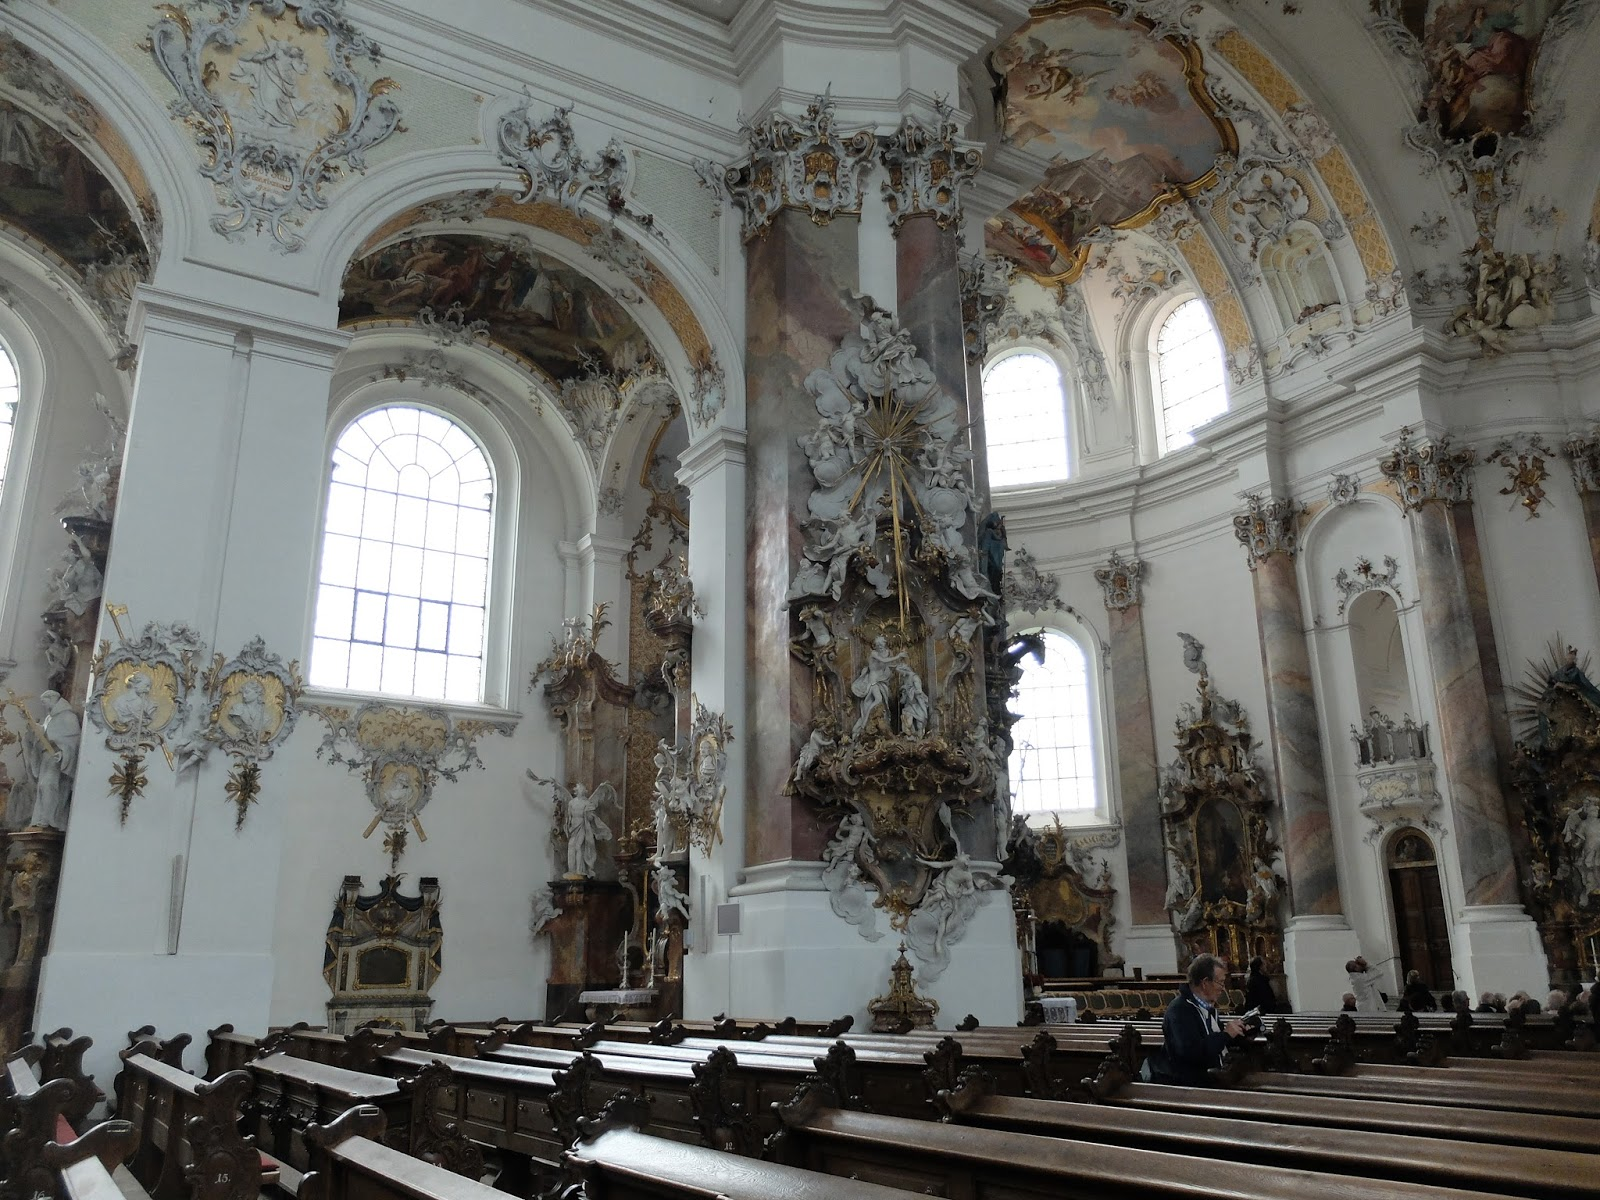 The life of couch church architecture baroque rococco for Modern baroque style